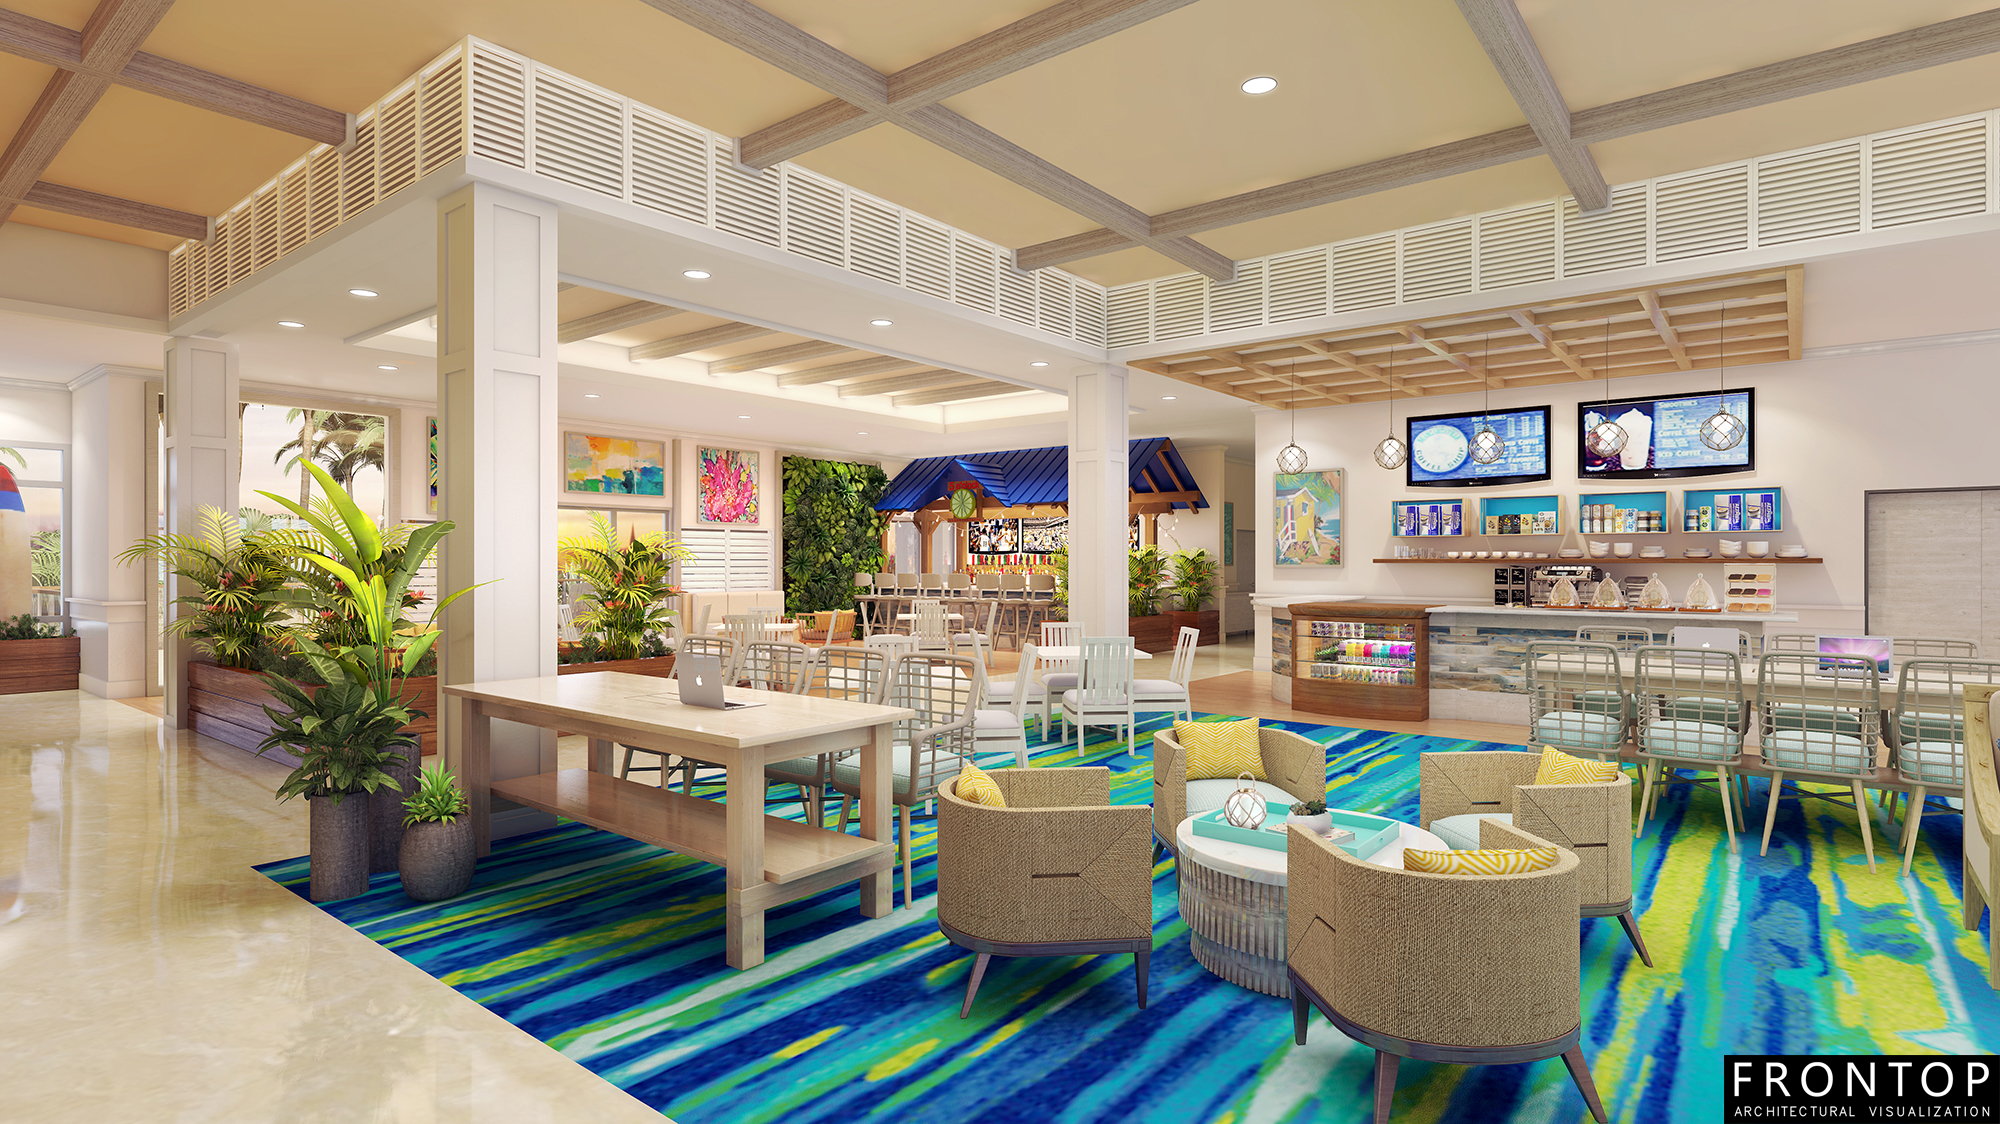 Reasonable price Interior Perspective - Margaritaville Hotel – Frontop